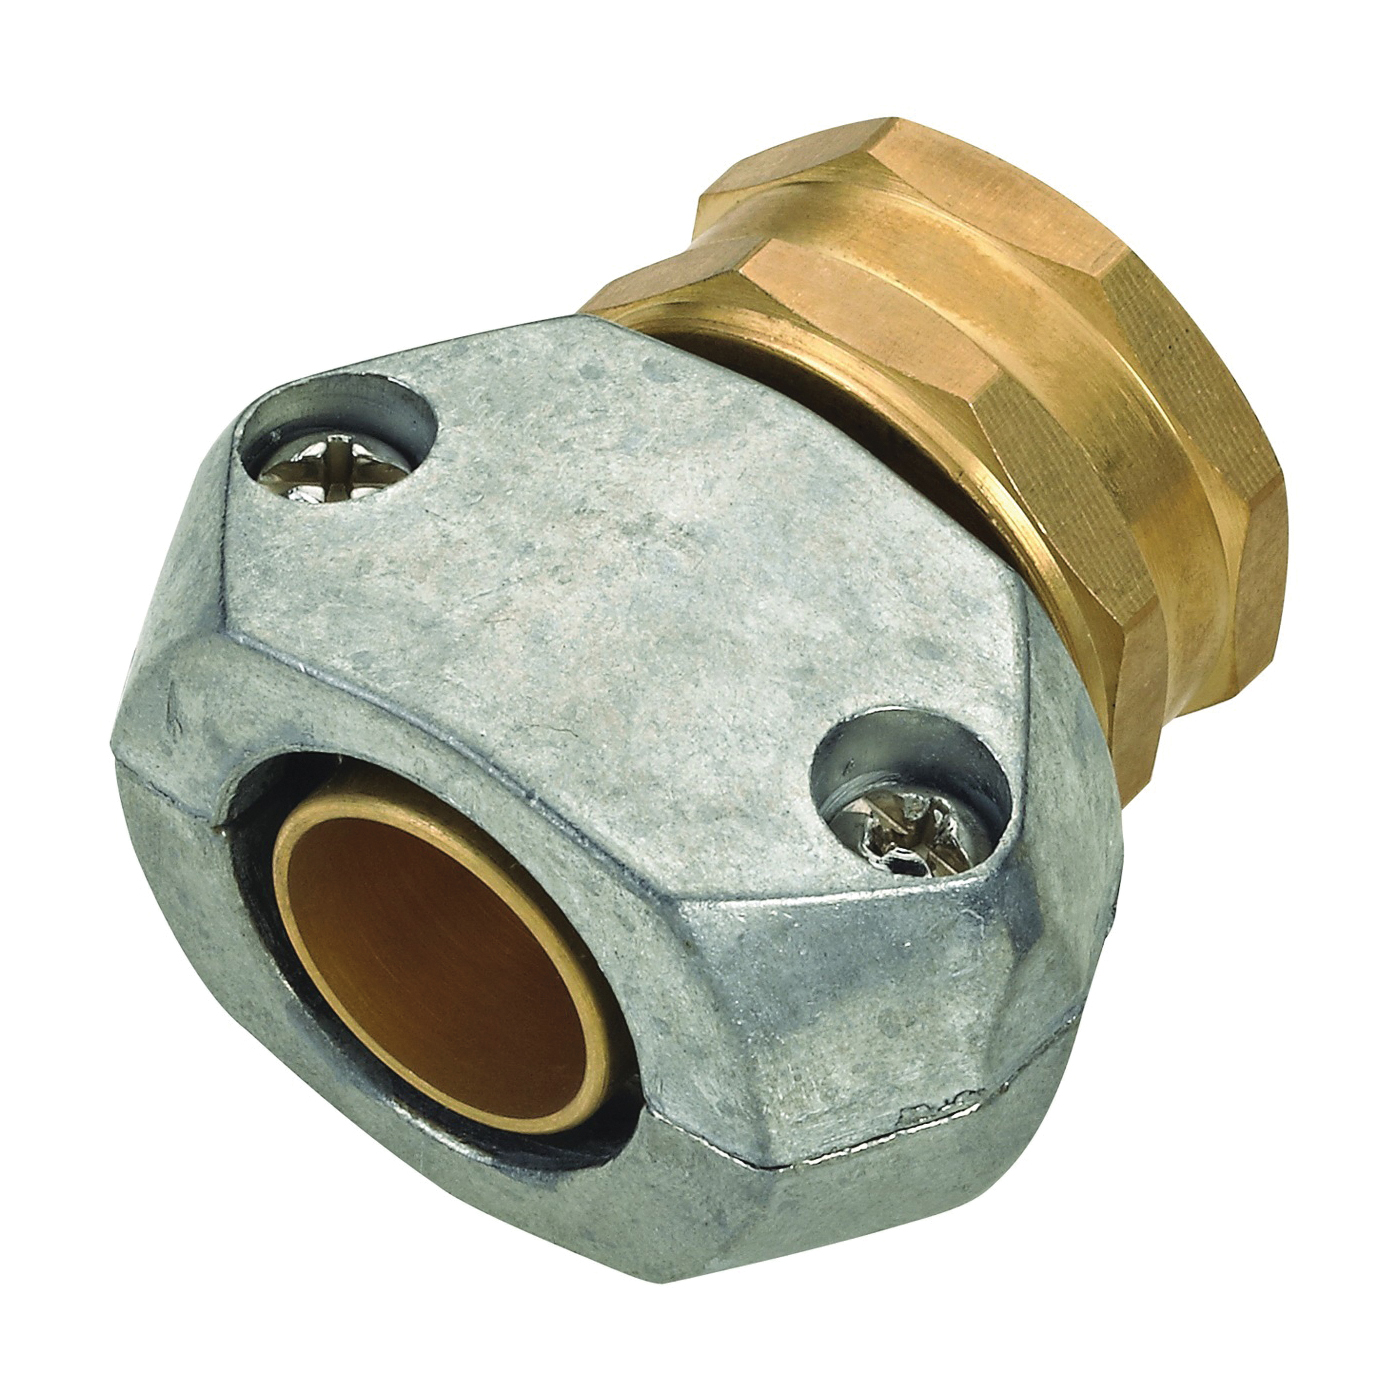 Picture of Landscapers Select GC533 Hose Coupling, 5/8 to 3/4 in, Female, Brass and zinc, Brass and Silver